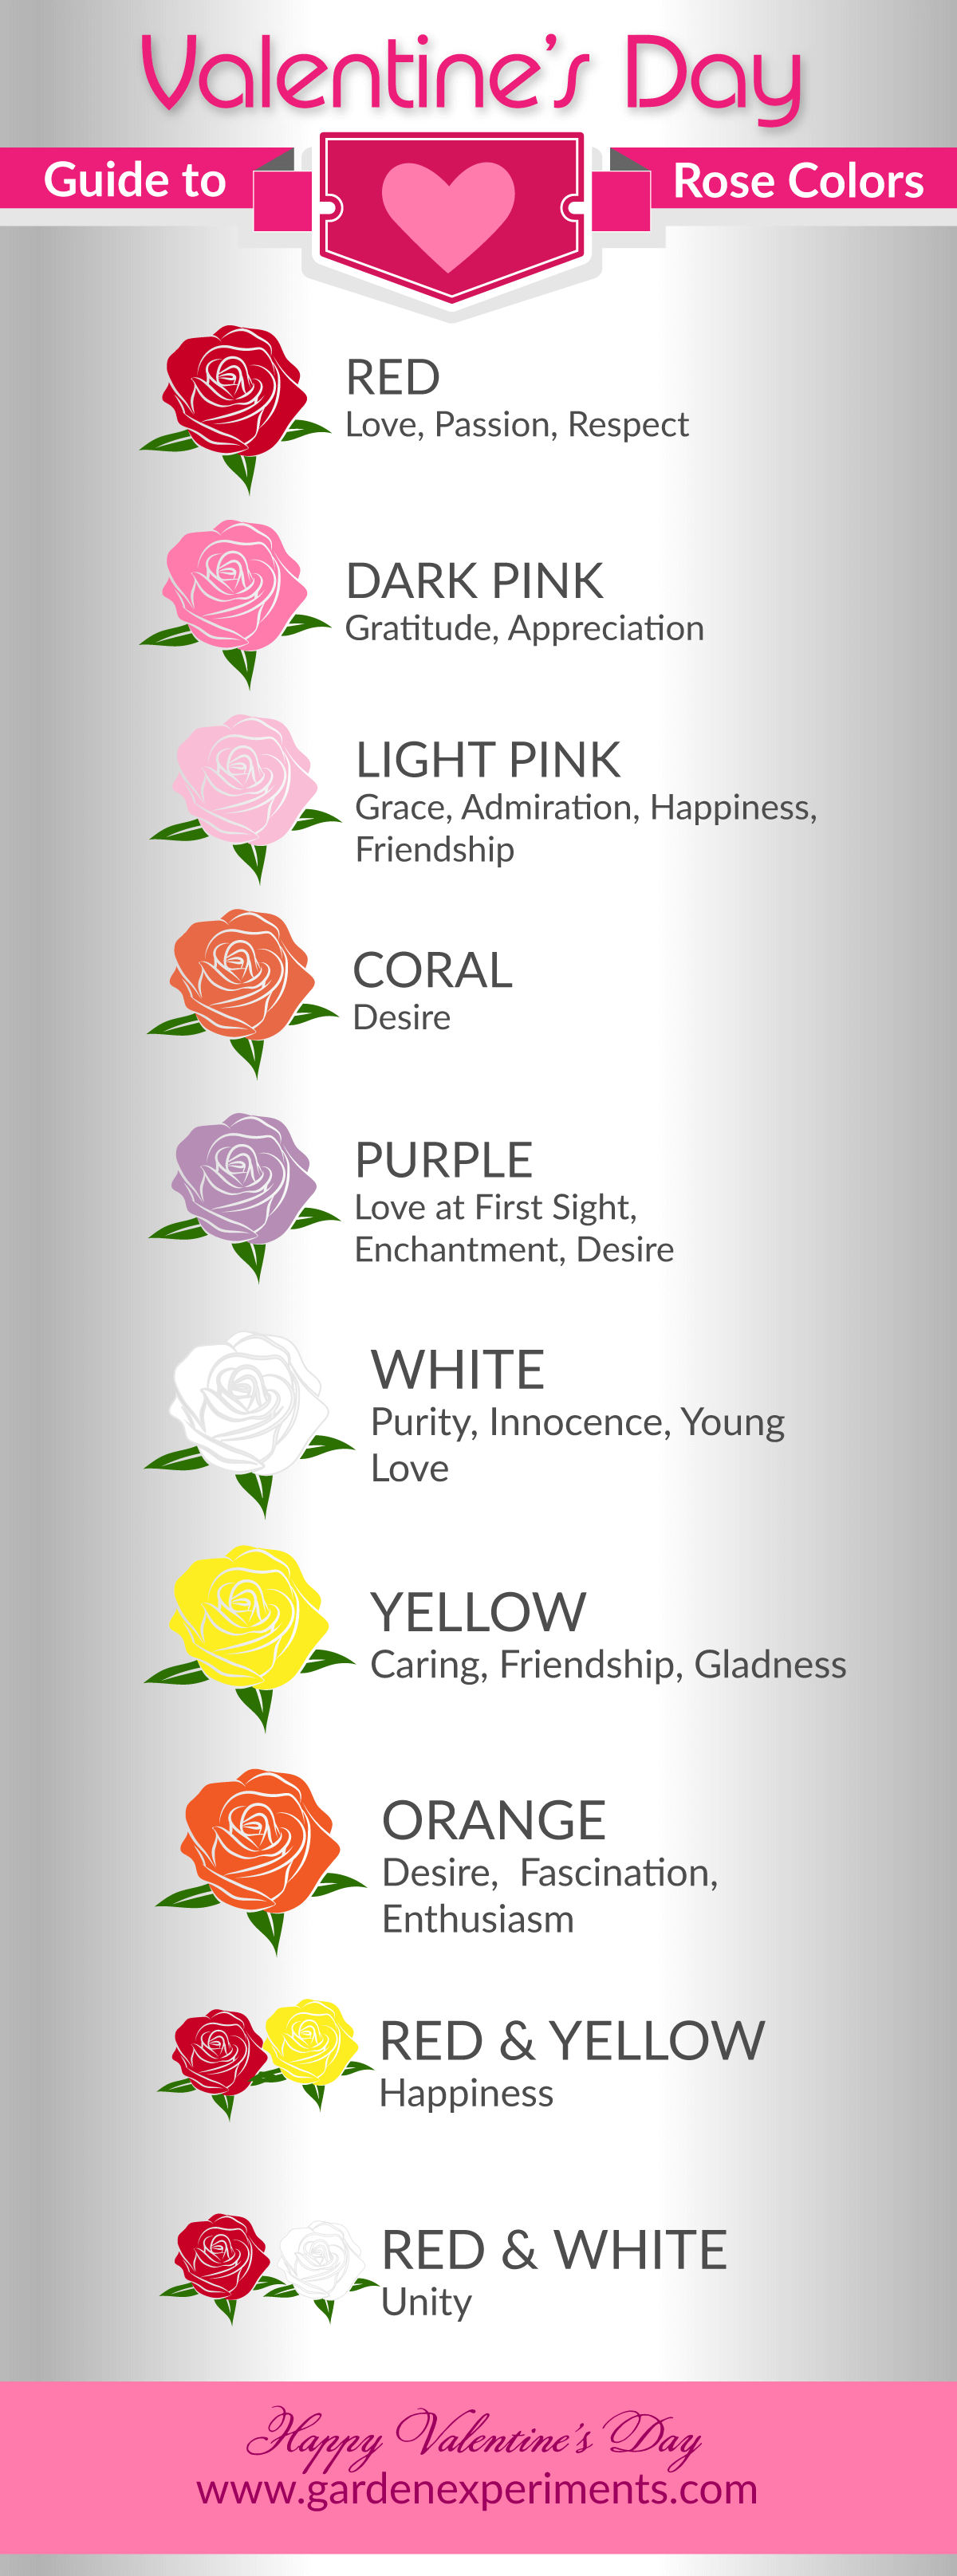 Rose Color Meaning Guide Car Owners Manual